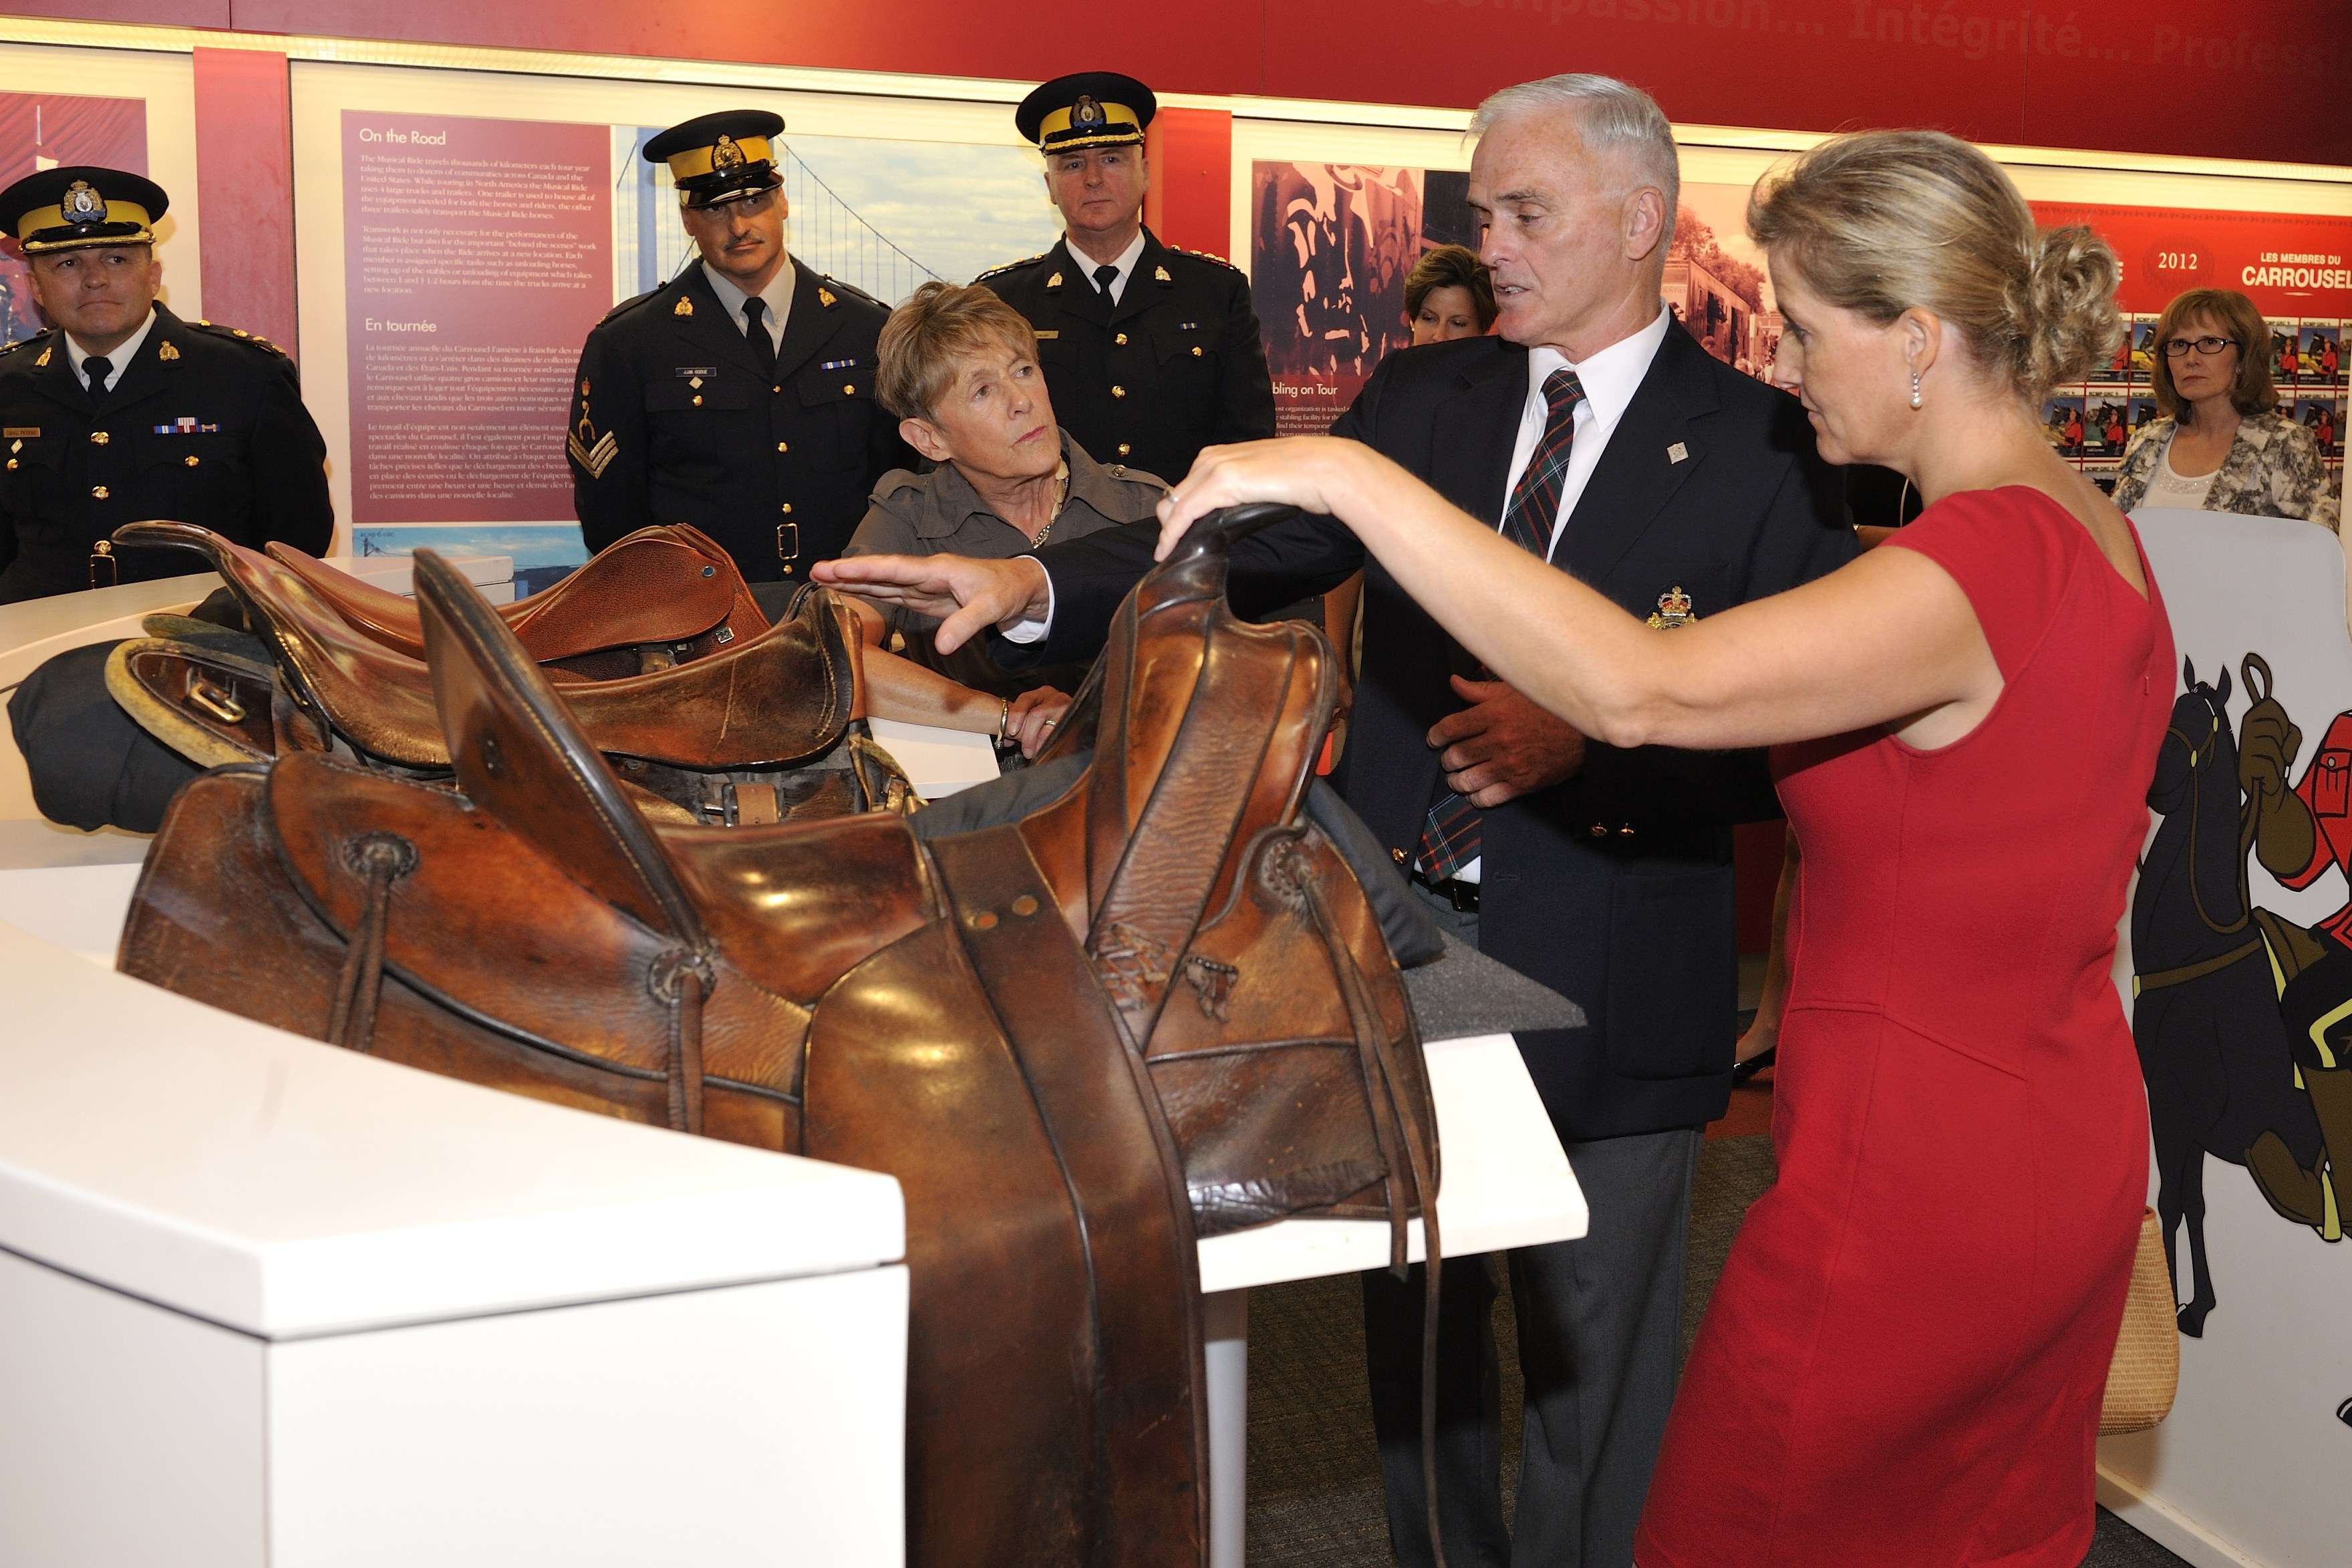 Her Excellency and Her Royal Highness also visited the Royal Canadian Mounted Police Musical Ride Centre.